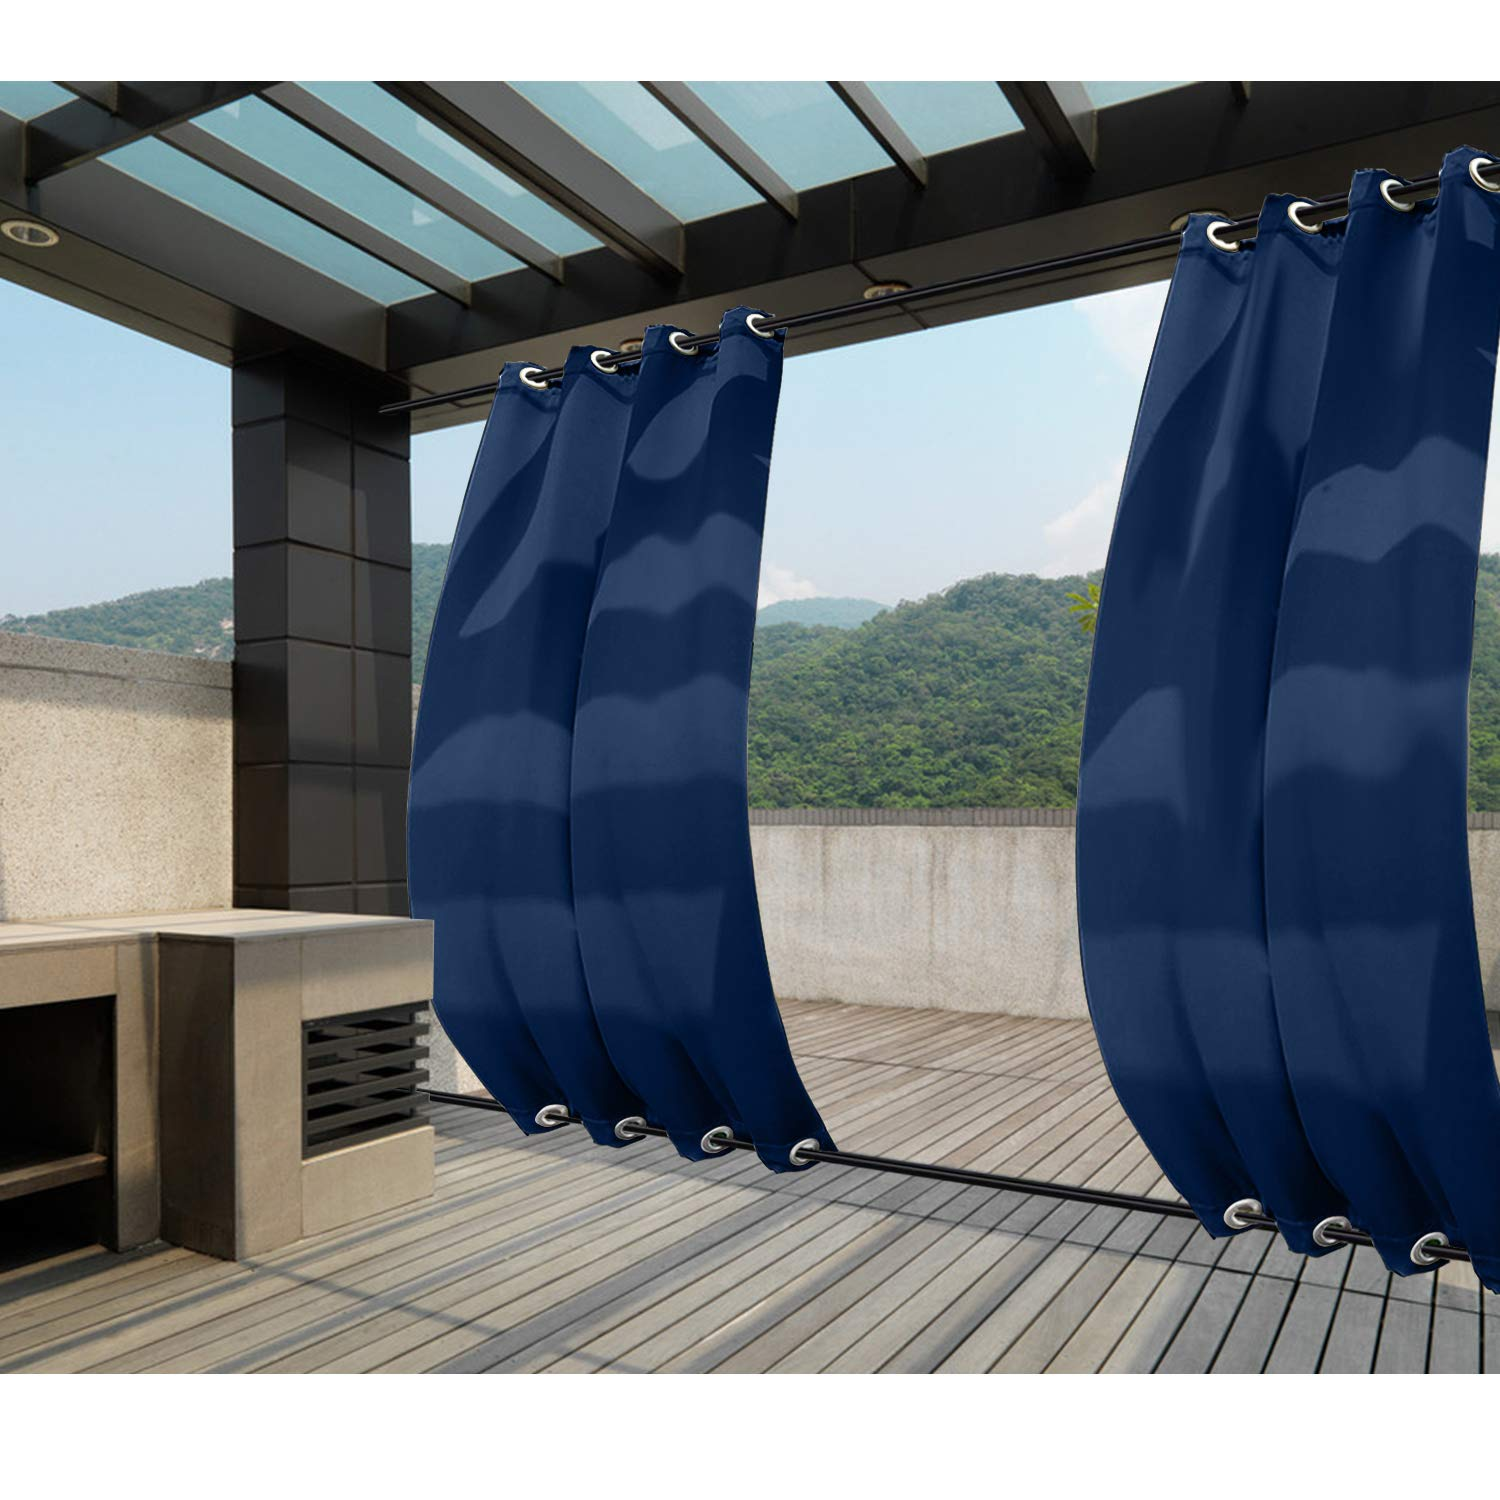 Macochico Extra Long Windproof Curtain Panels Outdoor Window Treatments Water Repellent Privacy Protection Heat Insulated for Patio Garden Gazebo Porch Cabana Navy 84W x 108L (1 Panel)